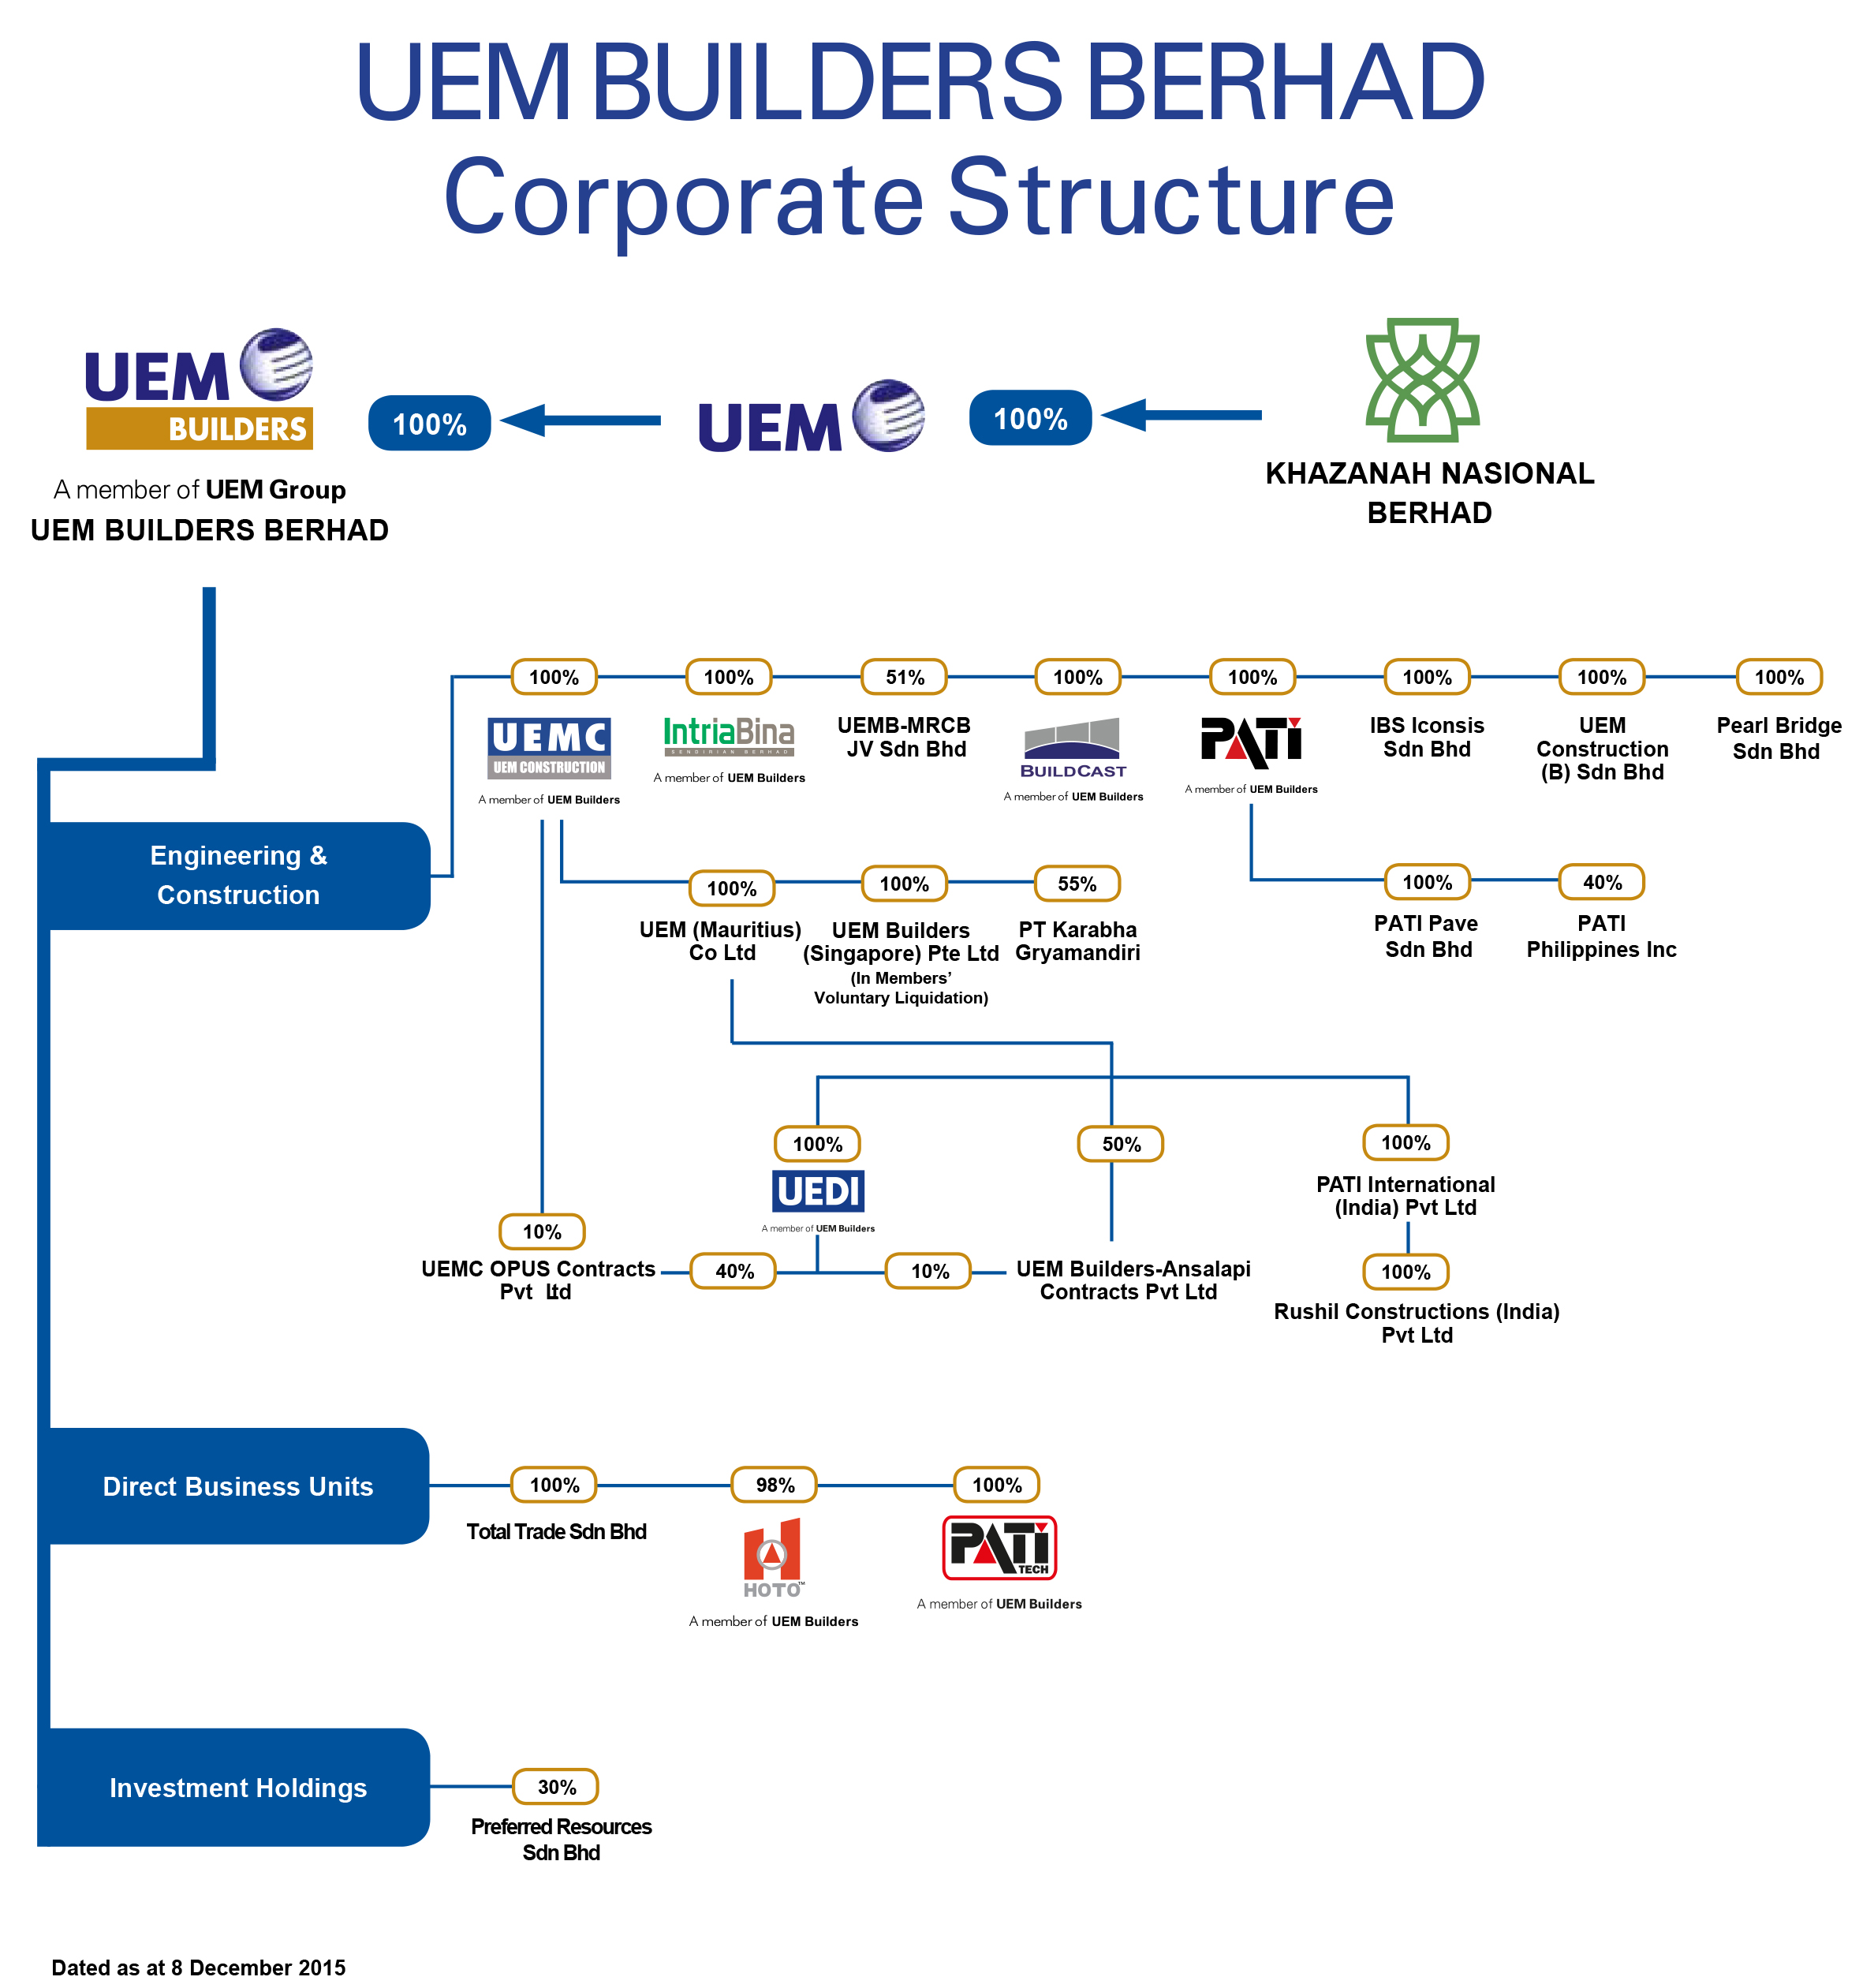 Uem Builders Berhad Corporate Structure